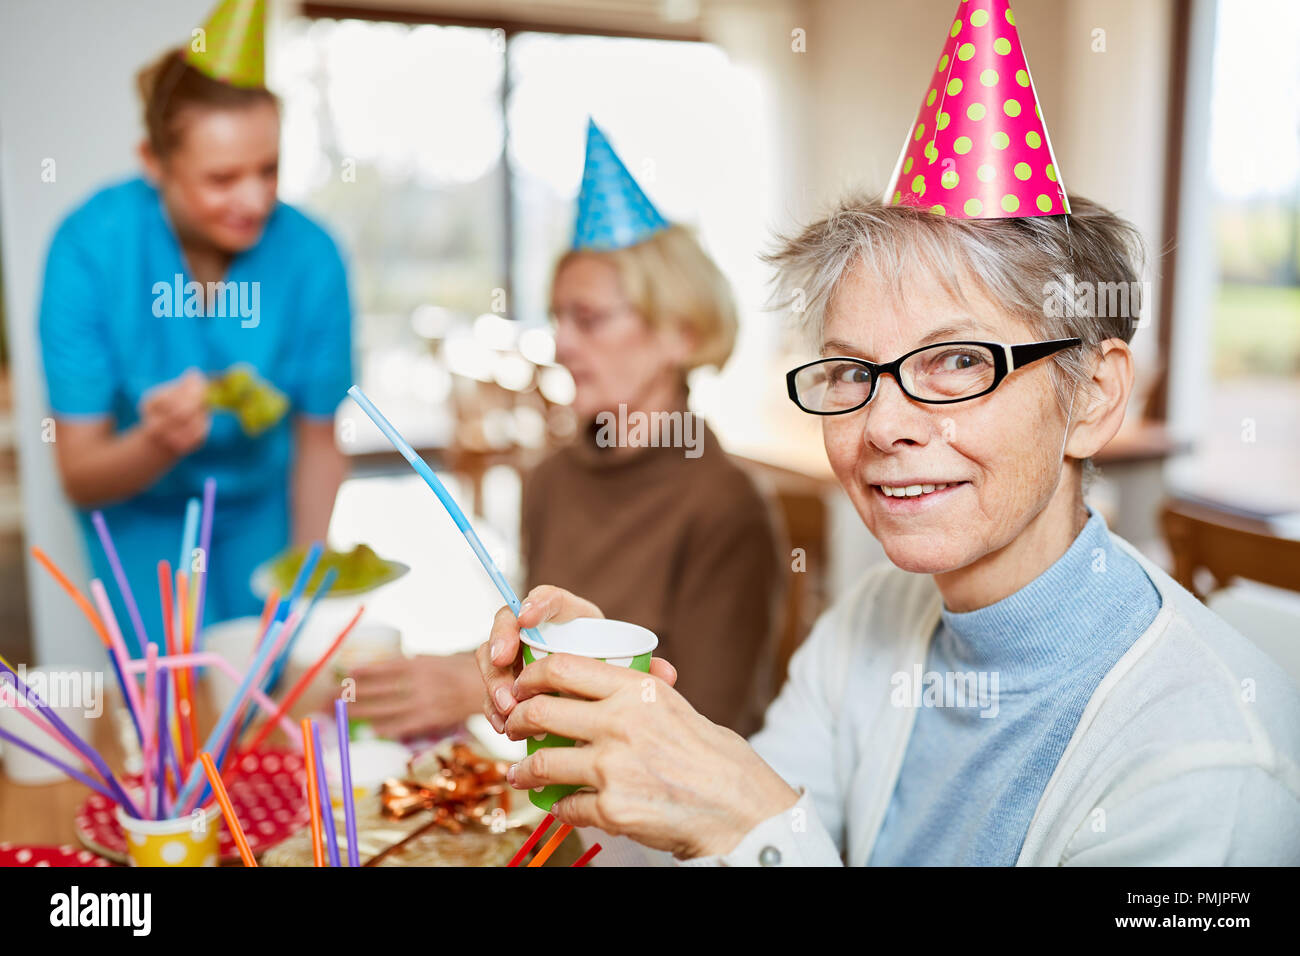 Senior woman in retirement home celebrates carnival together with friends and family - Stock Image